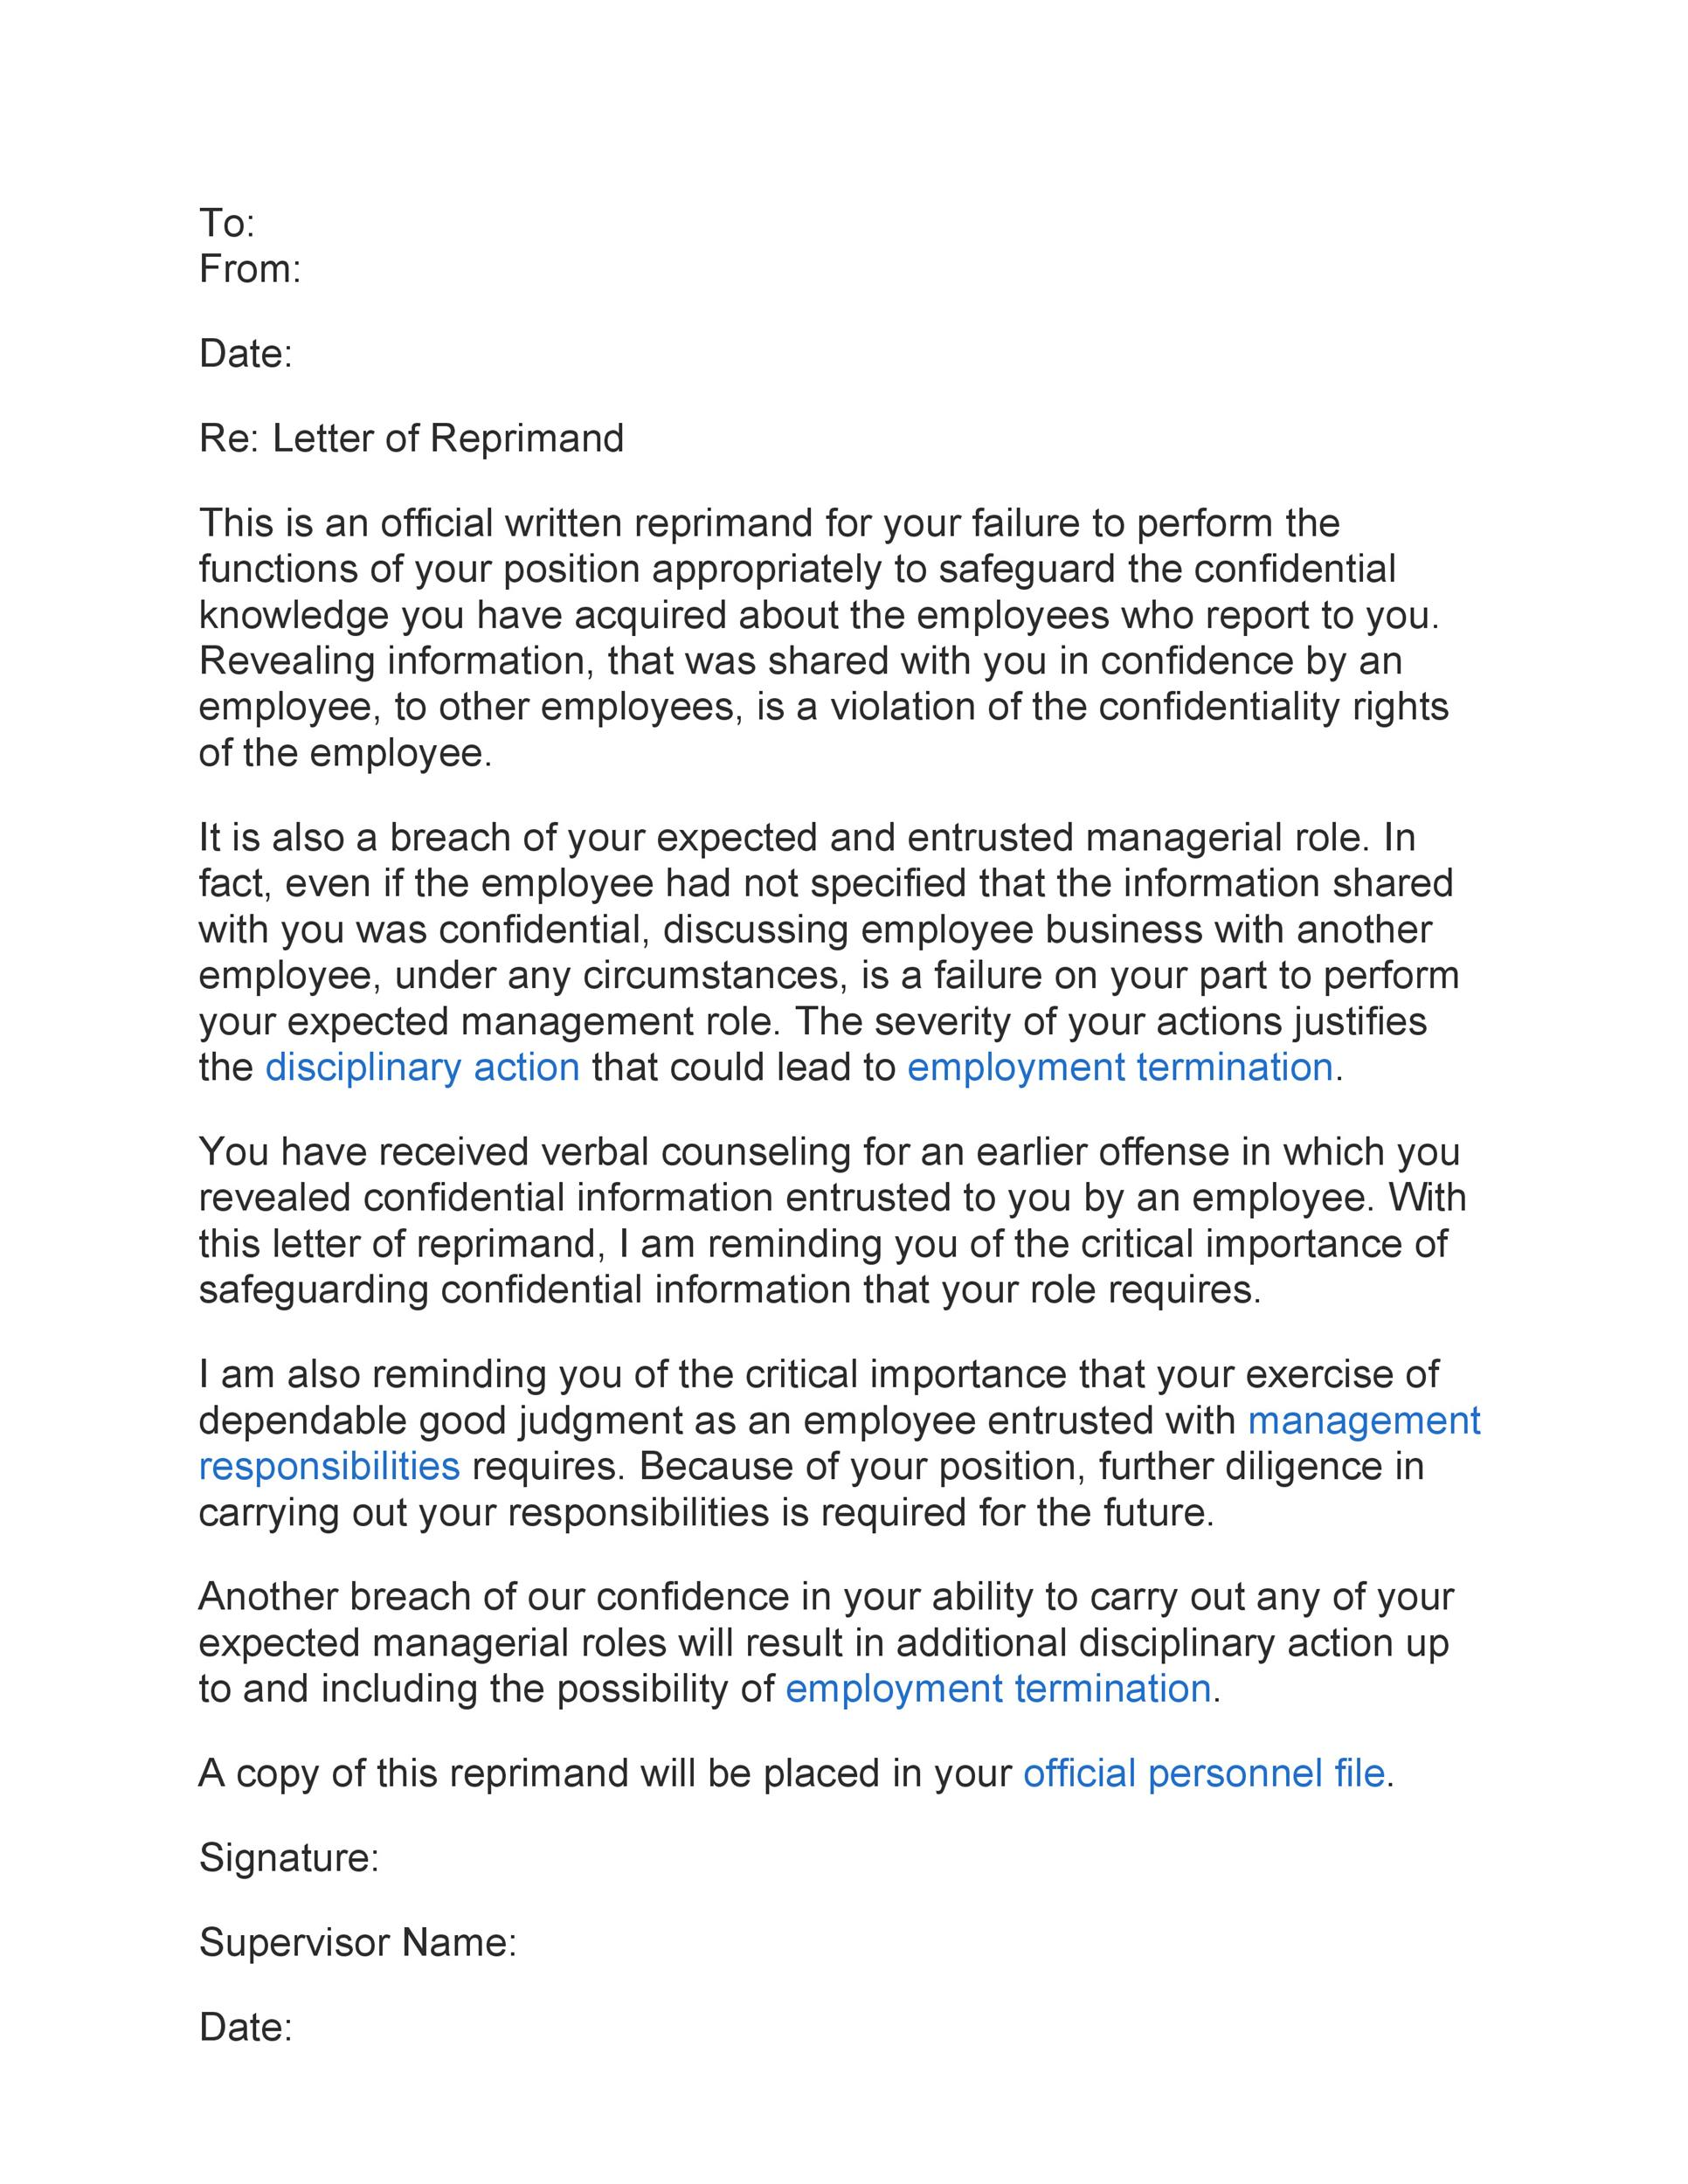 Free letter of reprimand 07